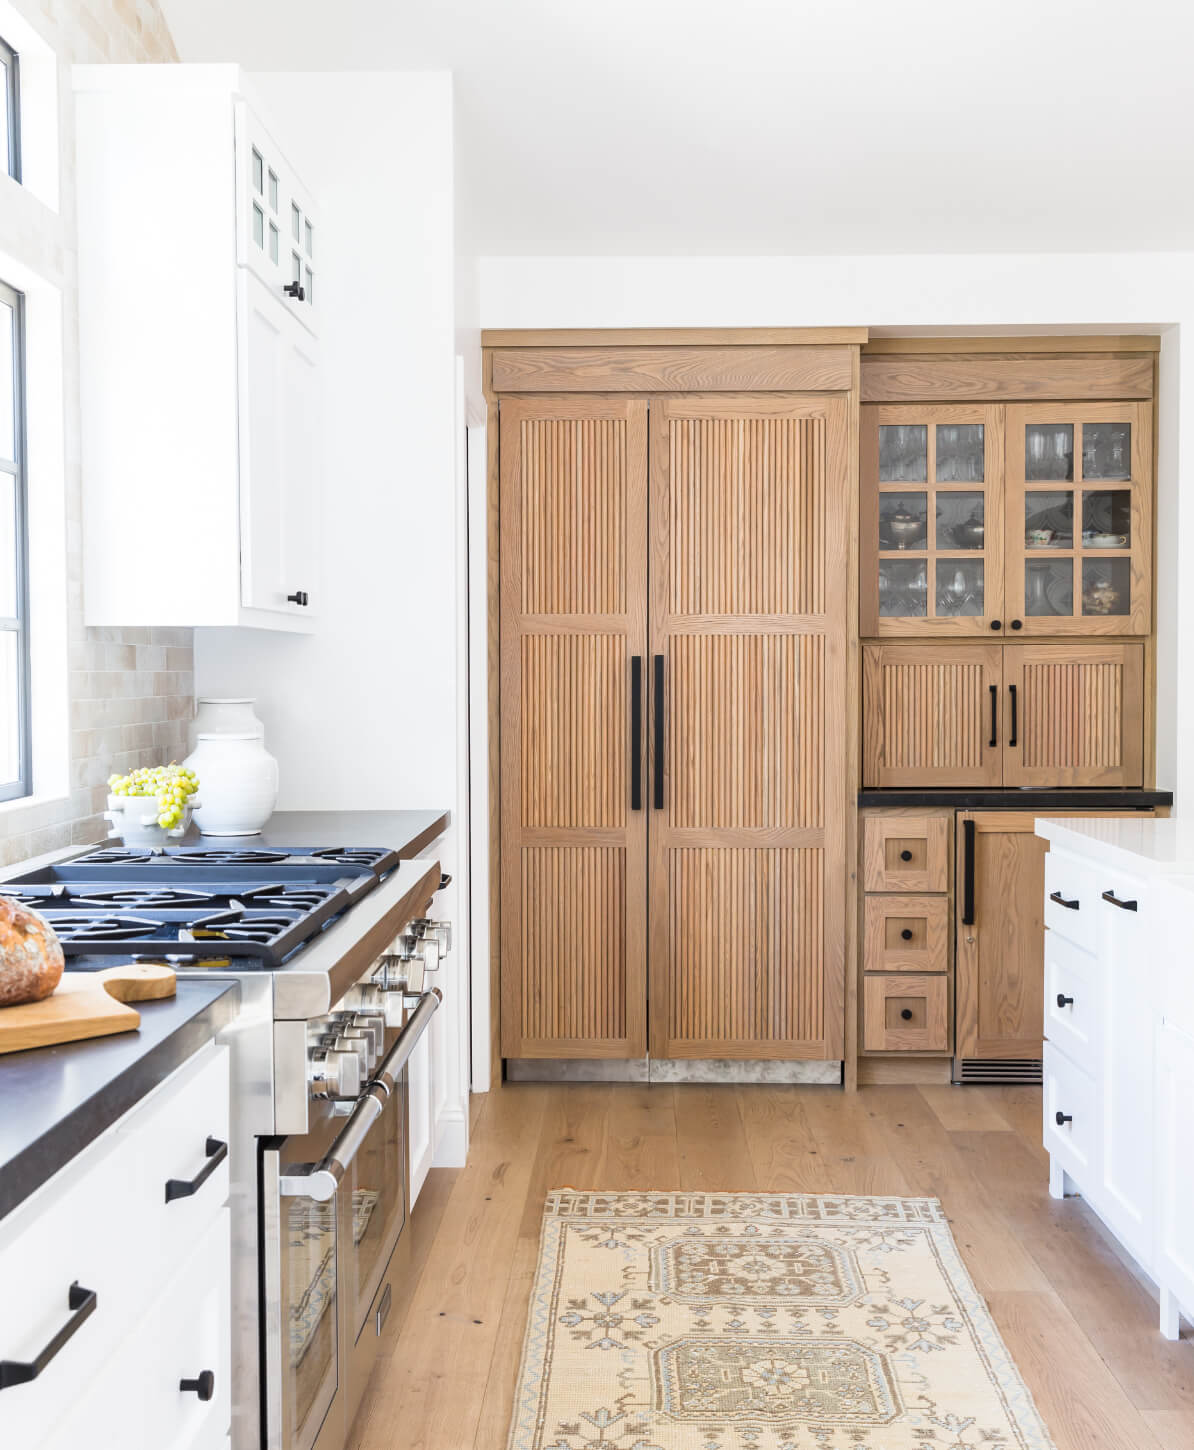 reeded wood kitchen cabinetry